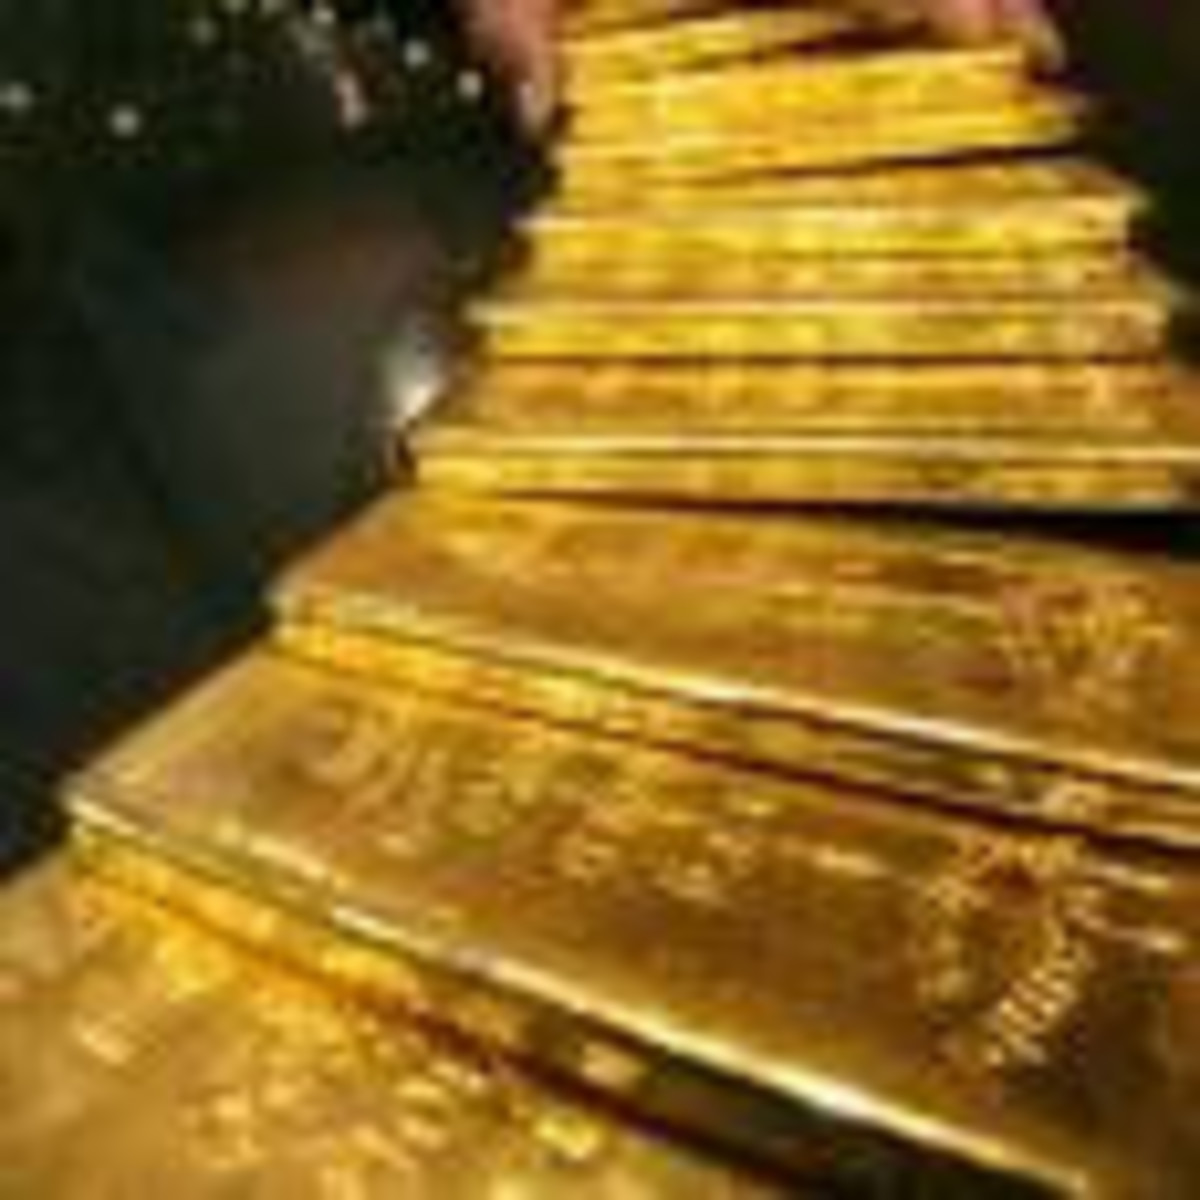 Gold - the heritage that is not so complicated to be shared for its value